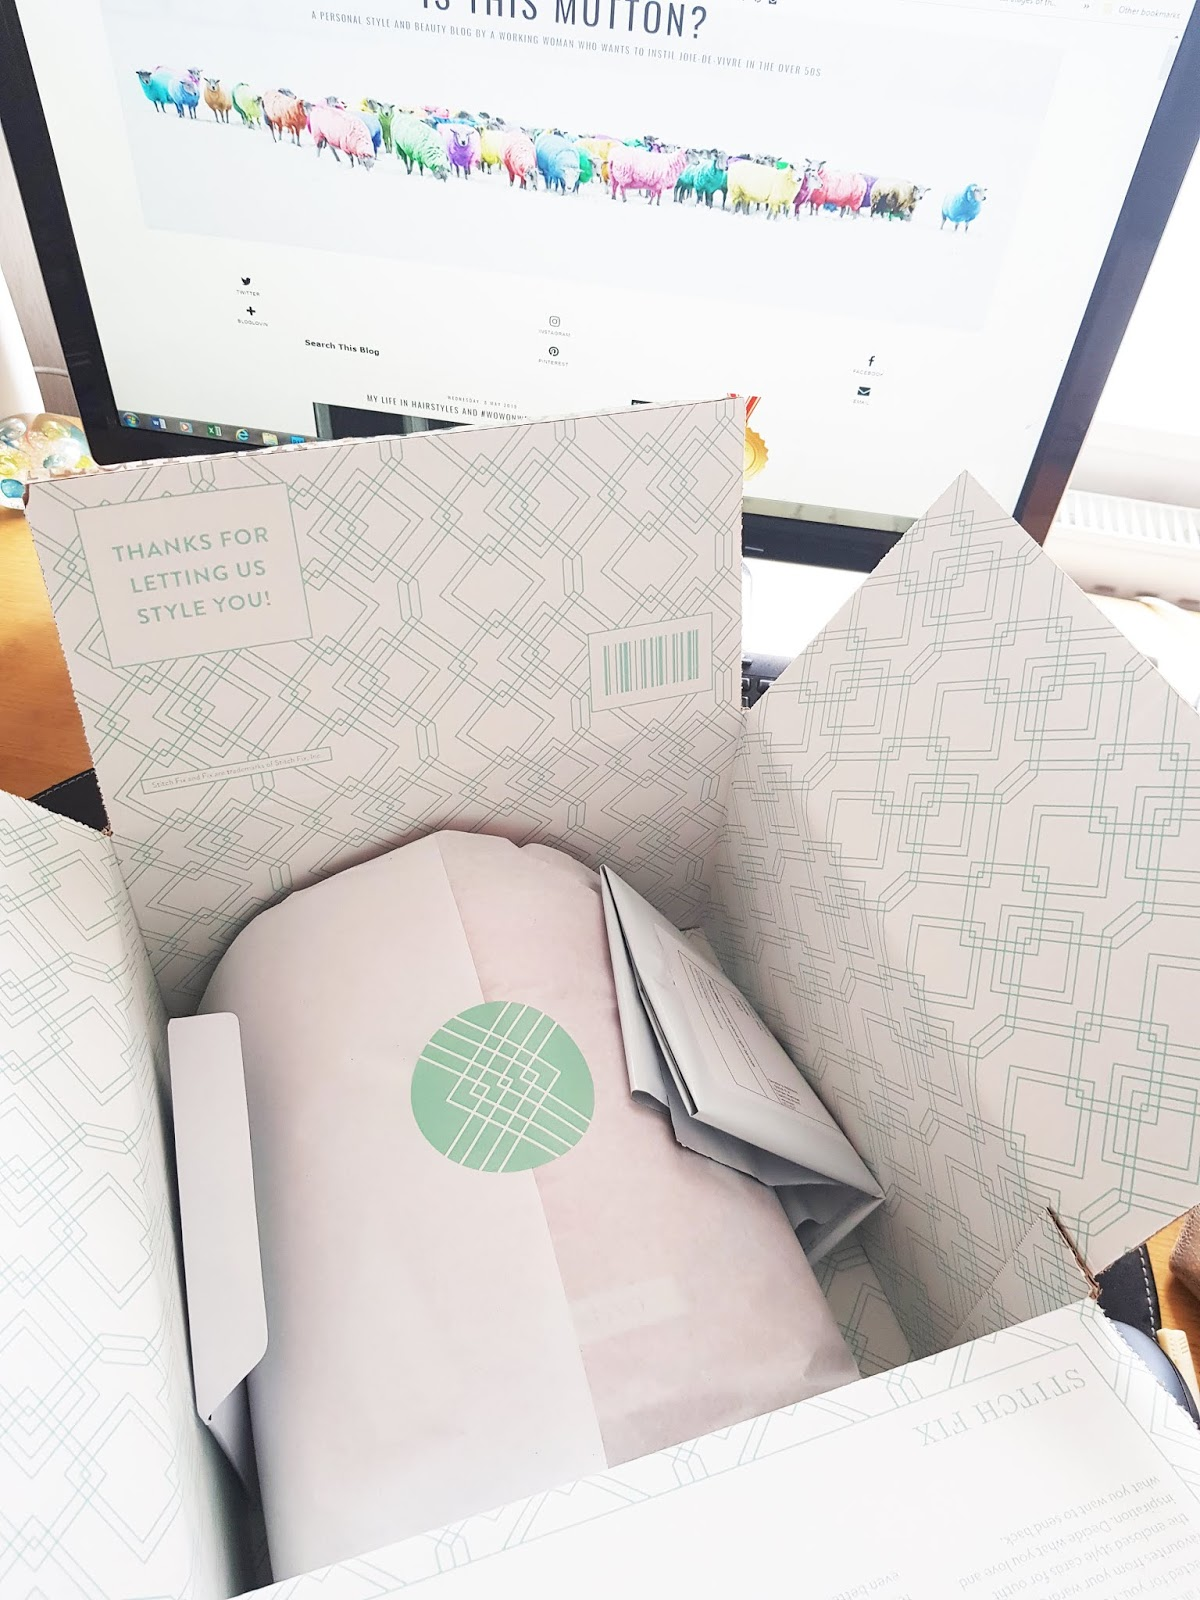 Stitch Fix delivery box with tissue wrapped garments